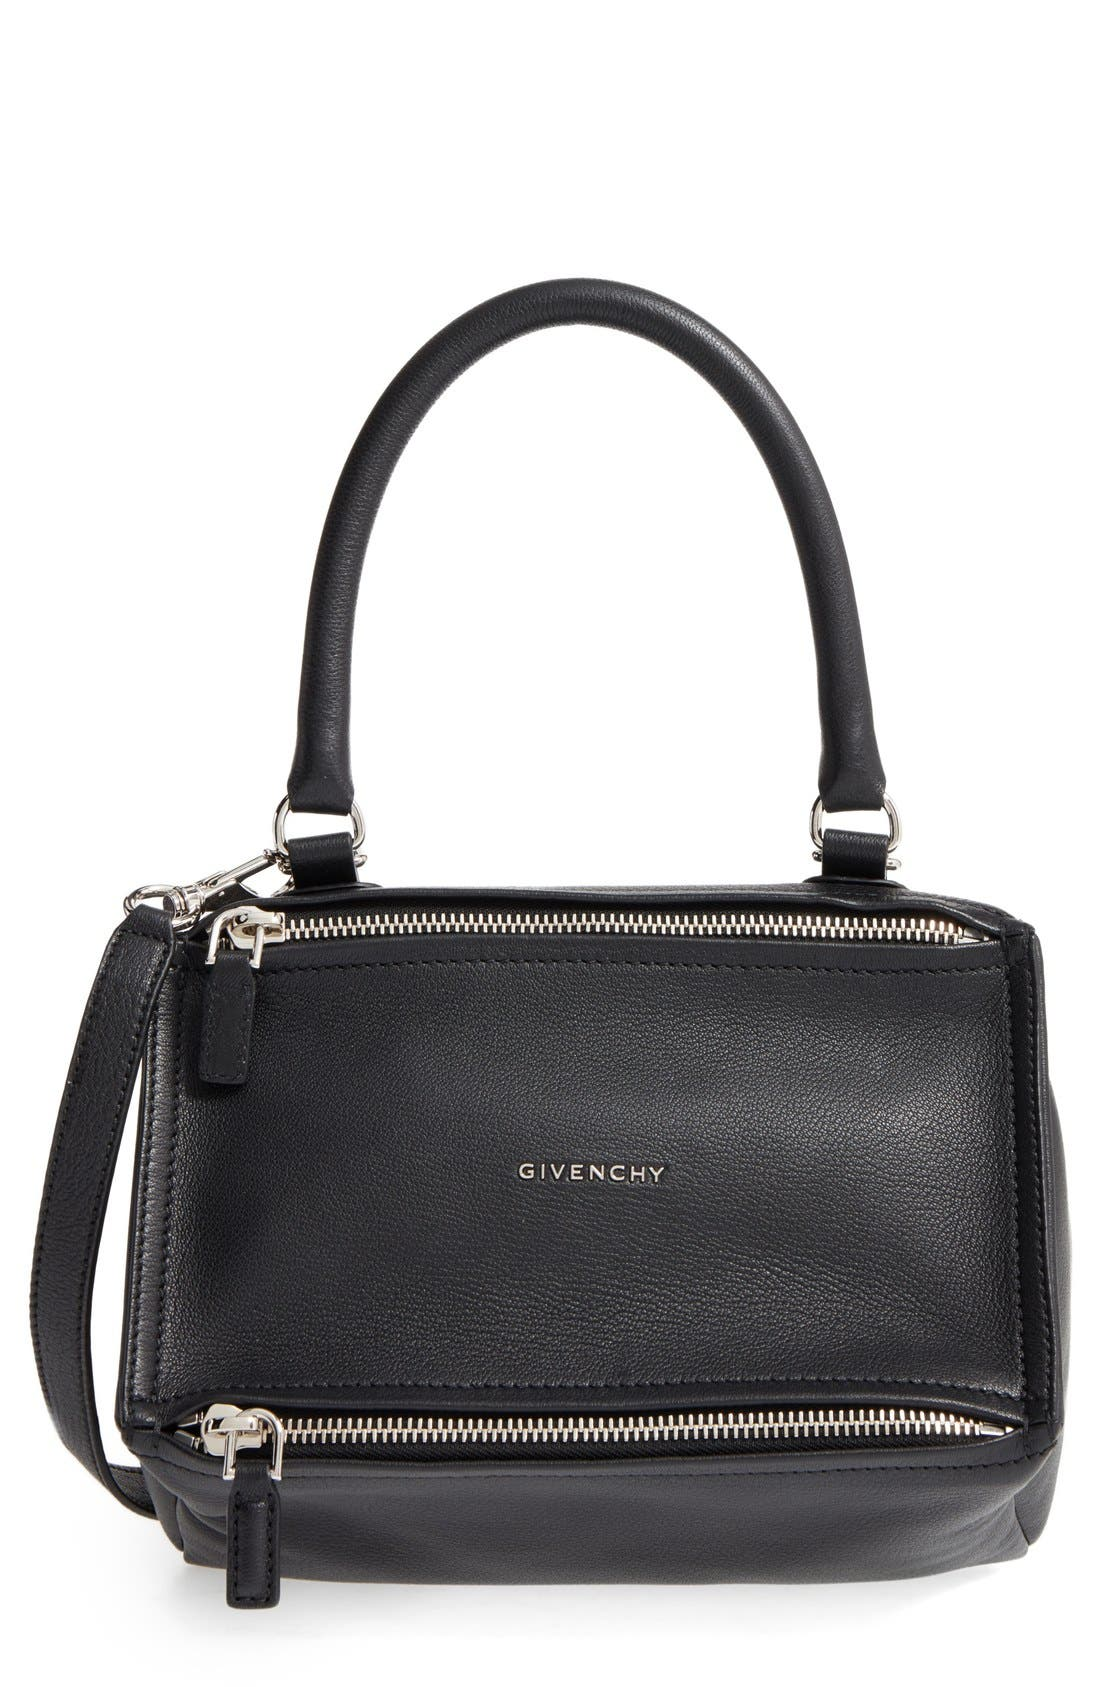 GIVENCHY Small Pandora Leather Satchel